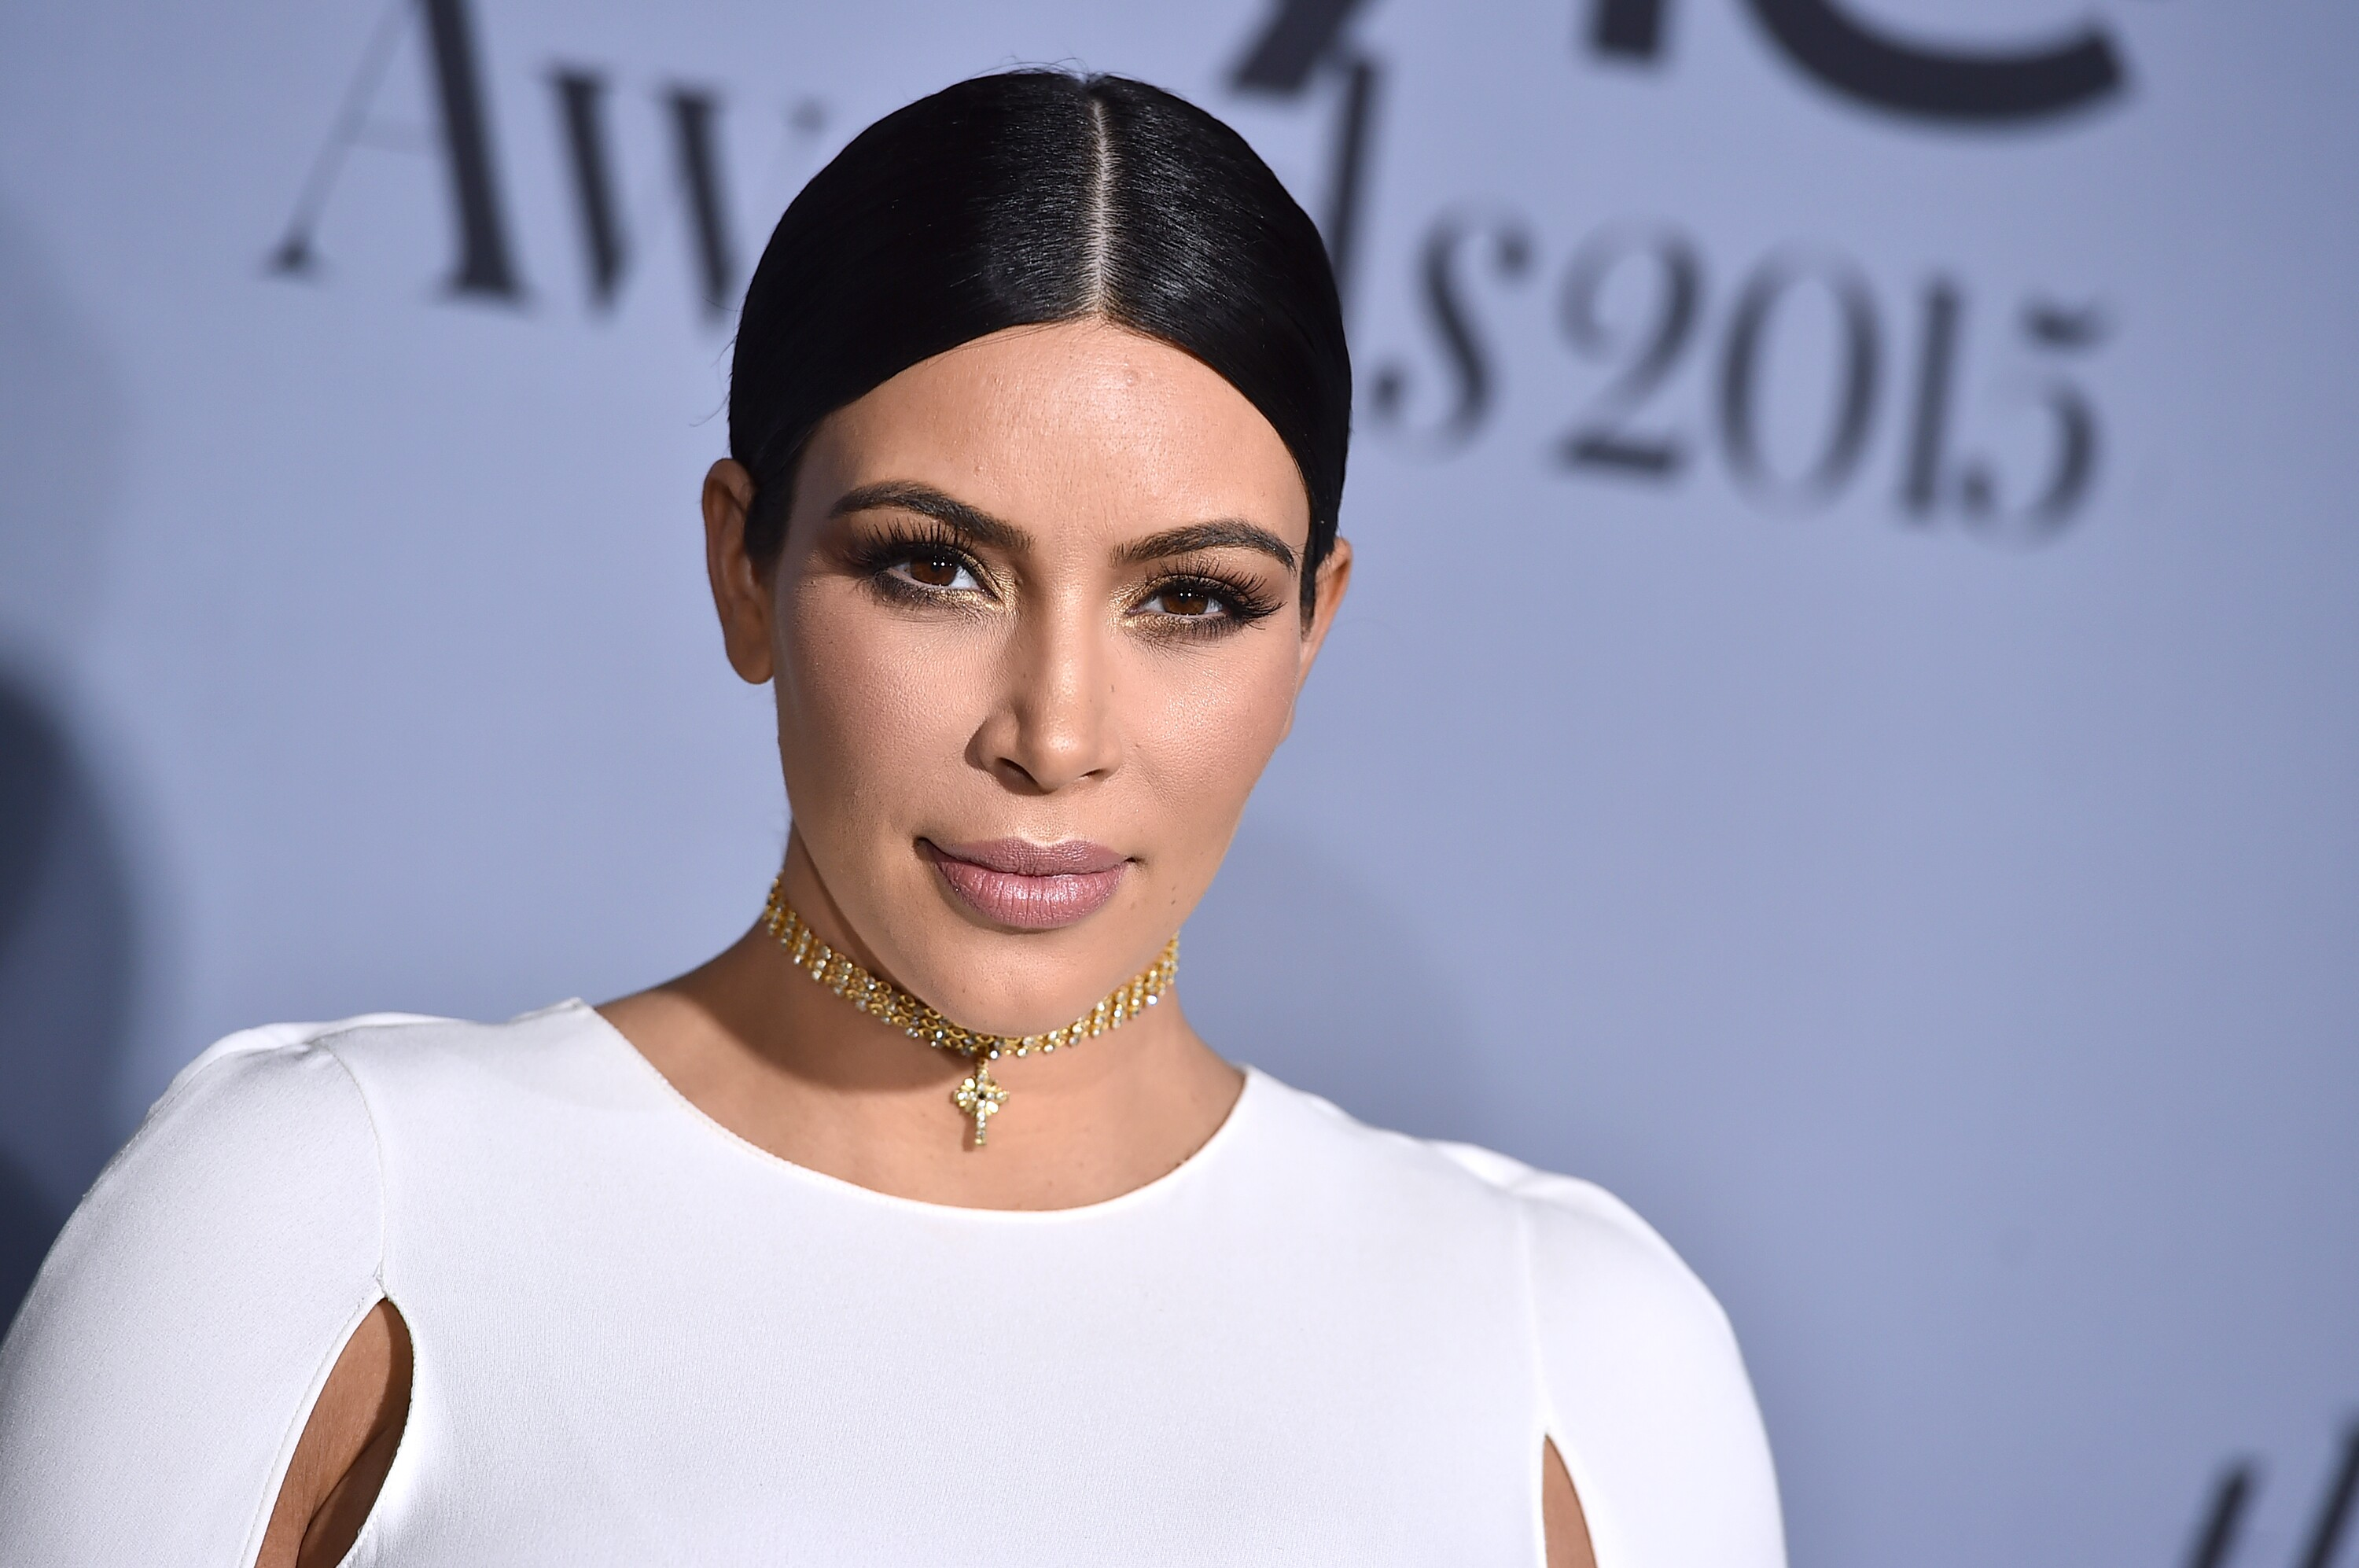 047b72386a80 Kim Kardashian West quietly proves White House is open to finding common  ground